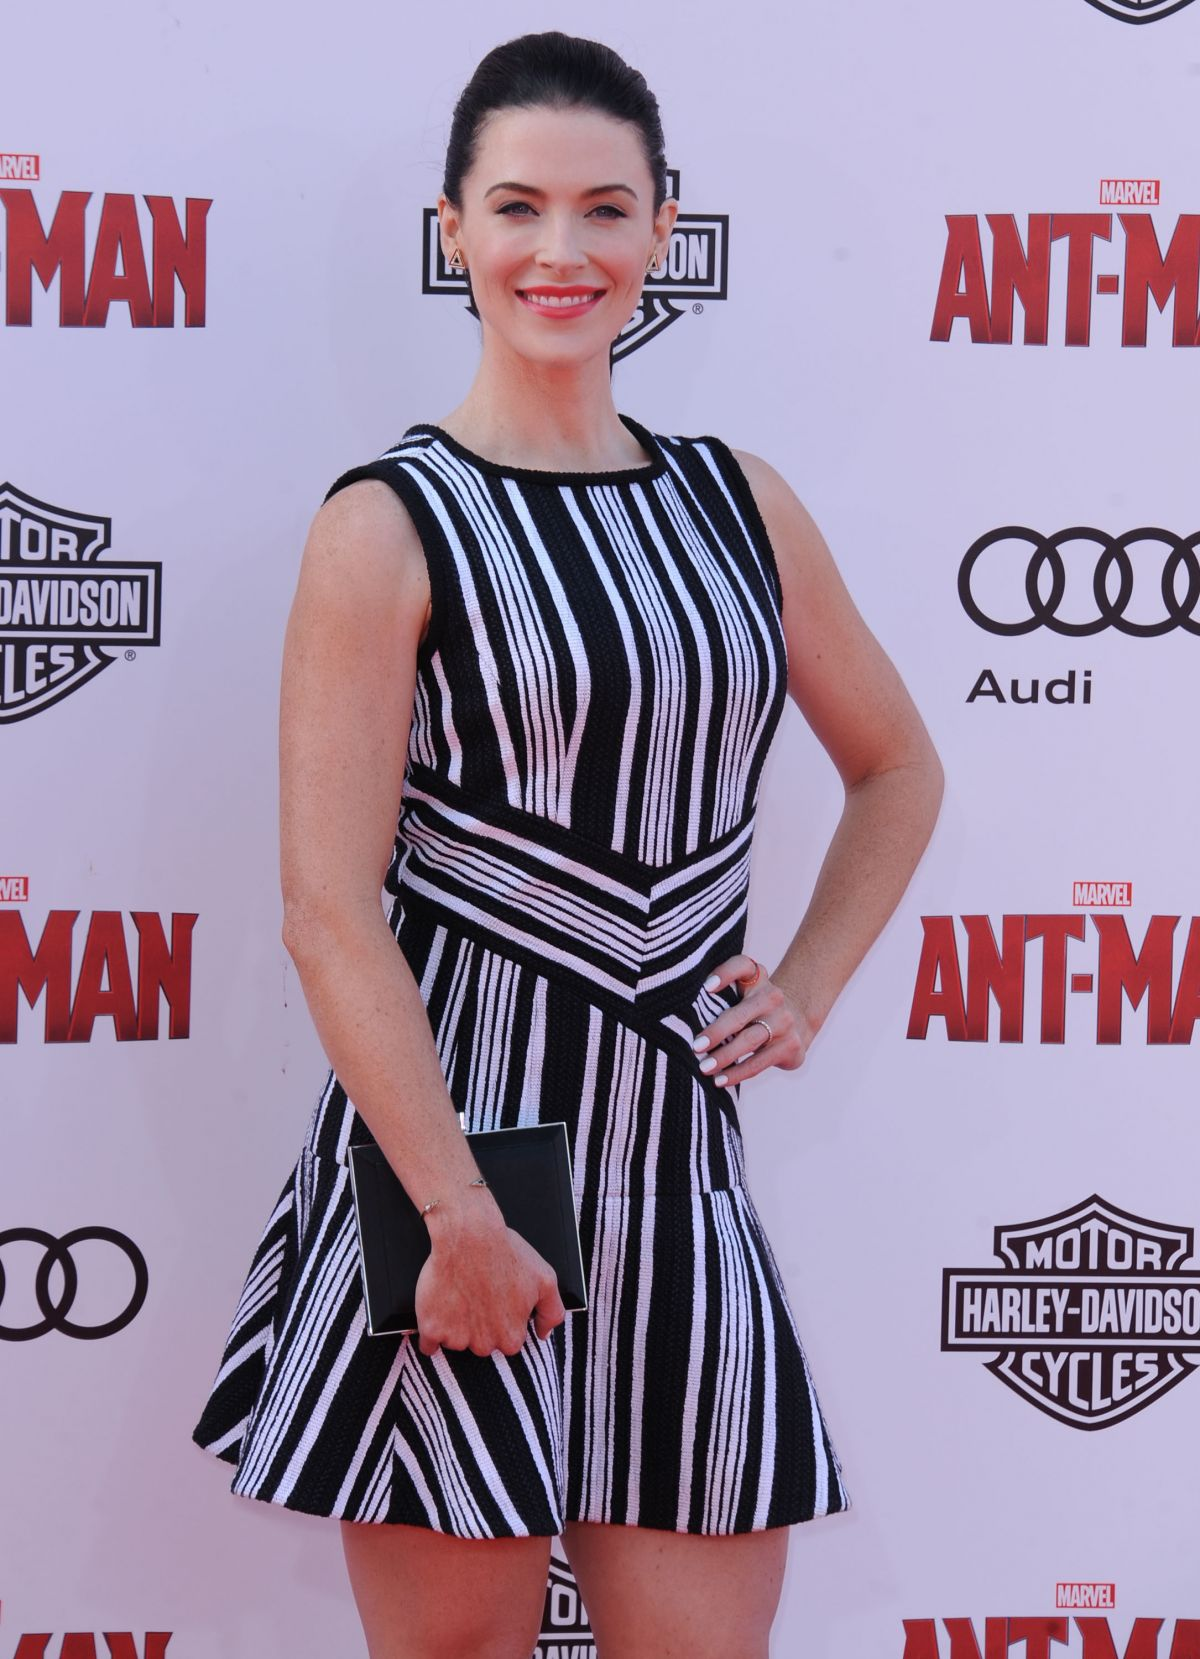 BRIDGET REGAN at Ant-man Premiere in Hollywood